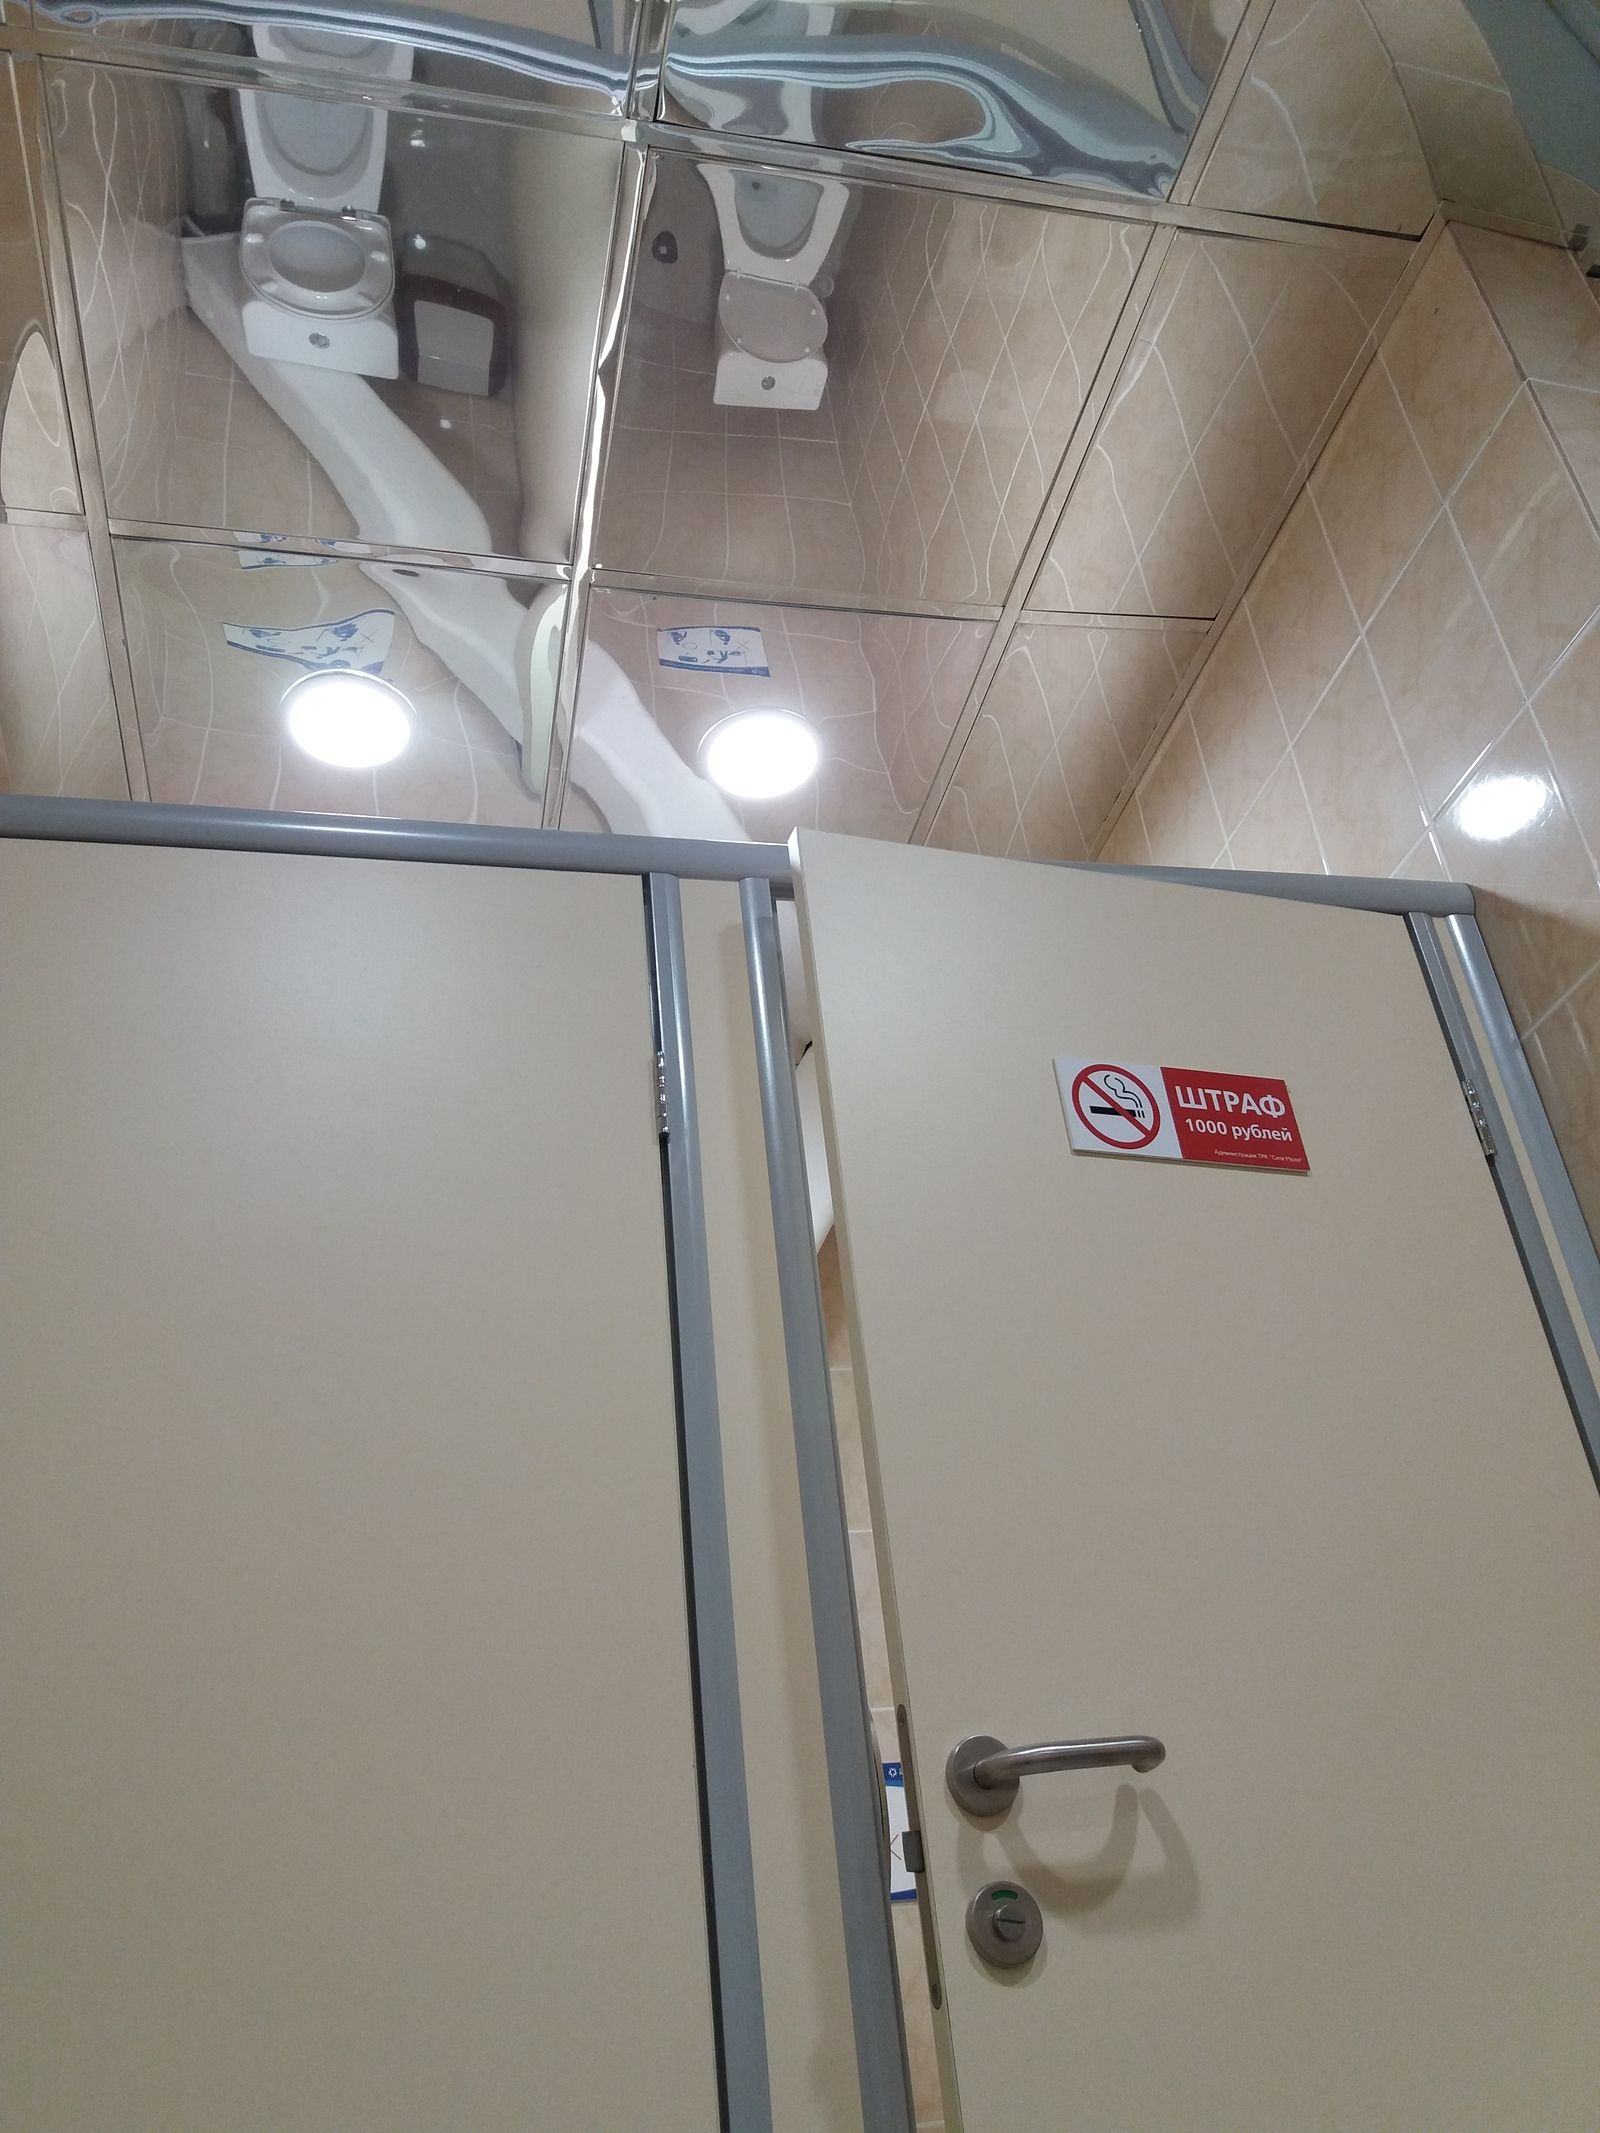 Toilets and mirror ceiling reddit pics pinterest mirror toilets and mirror ceiling dailygadgetfo Choice Image